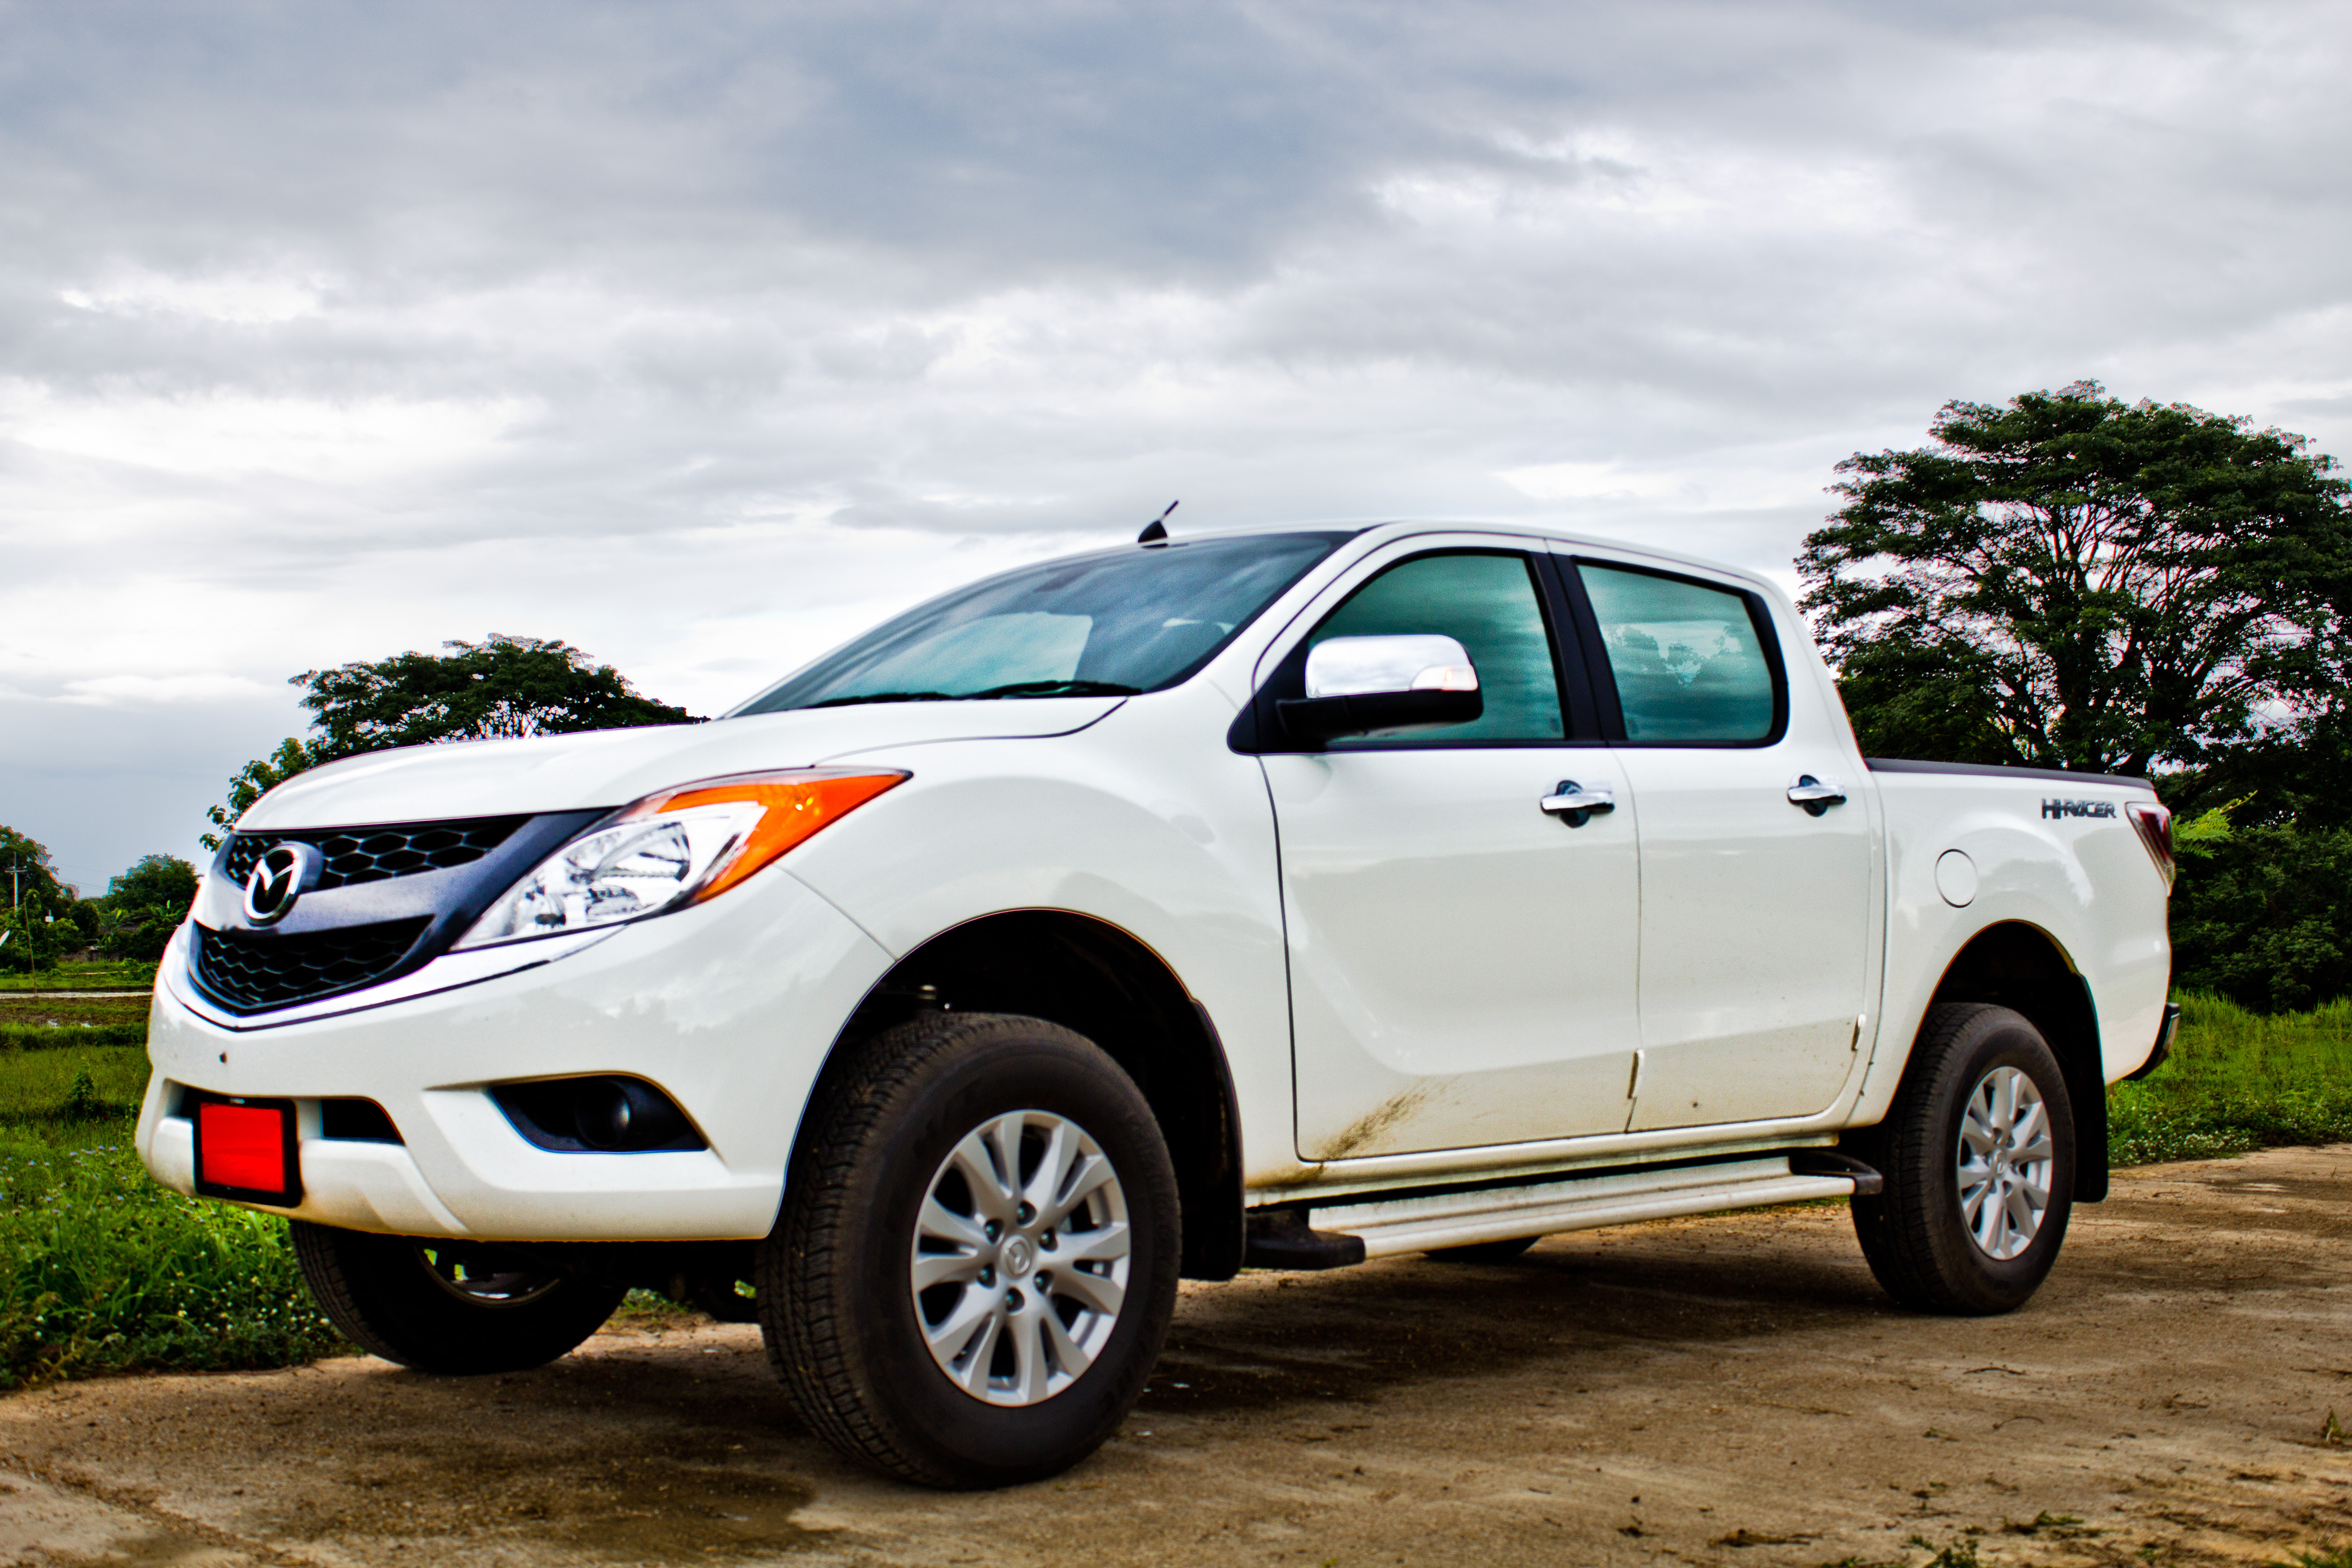 2014 mazda bt 50 pictures information and specs auto. Black Bedroom Furniture Sets. Home Design Ideas